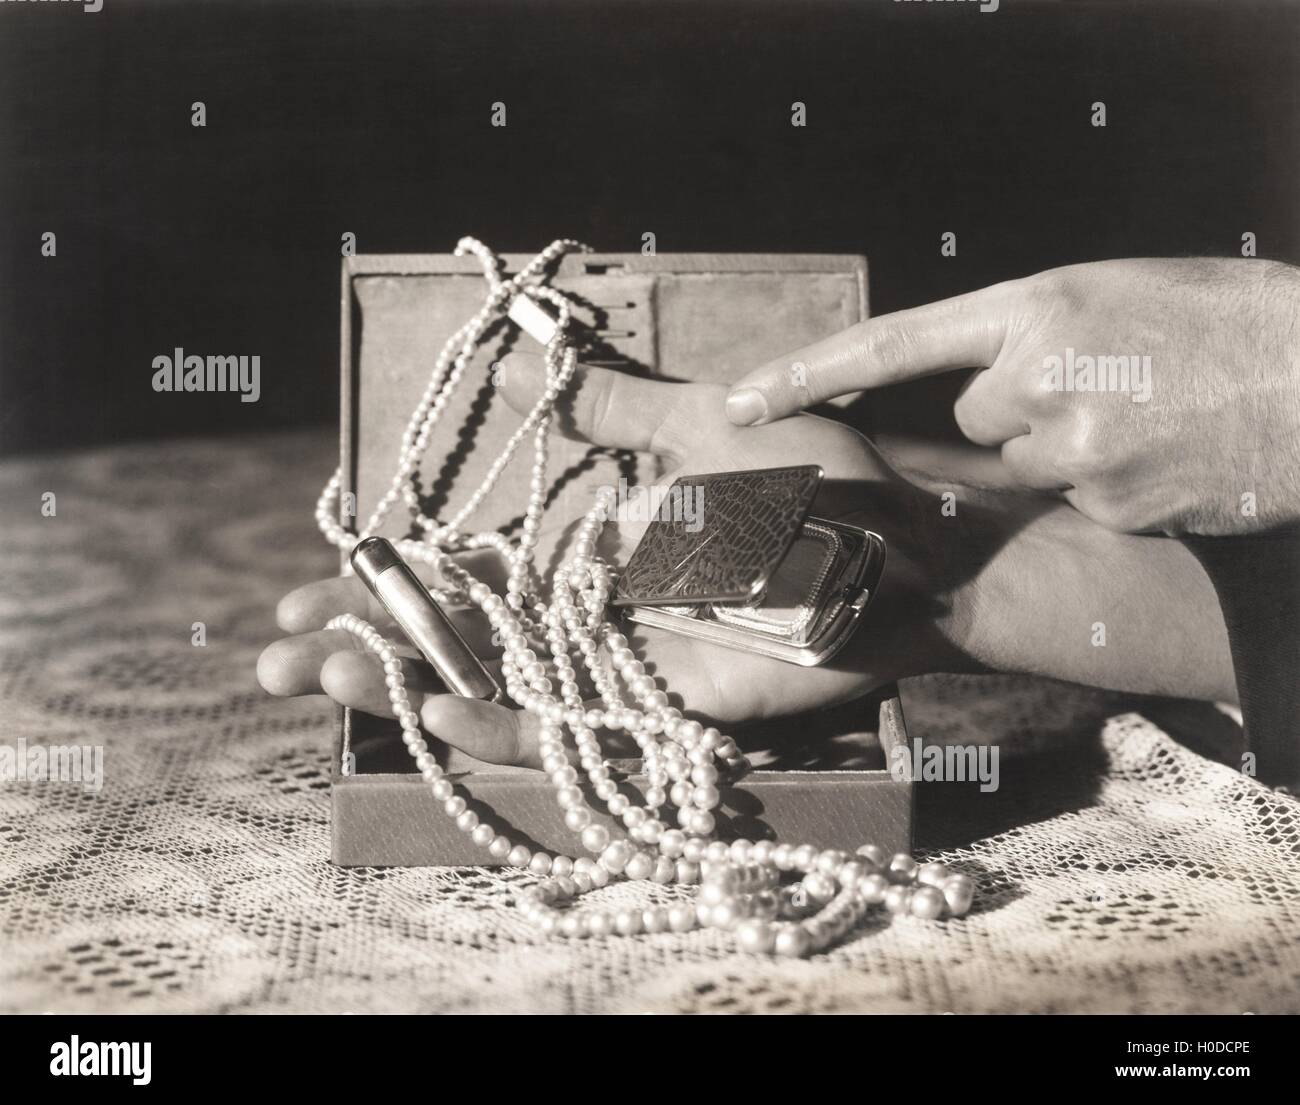 Finding the missing pearls - Stock Image